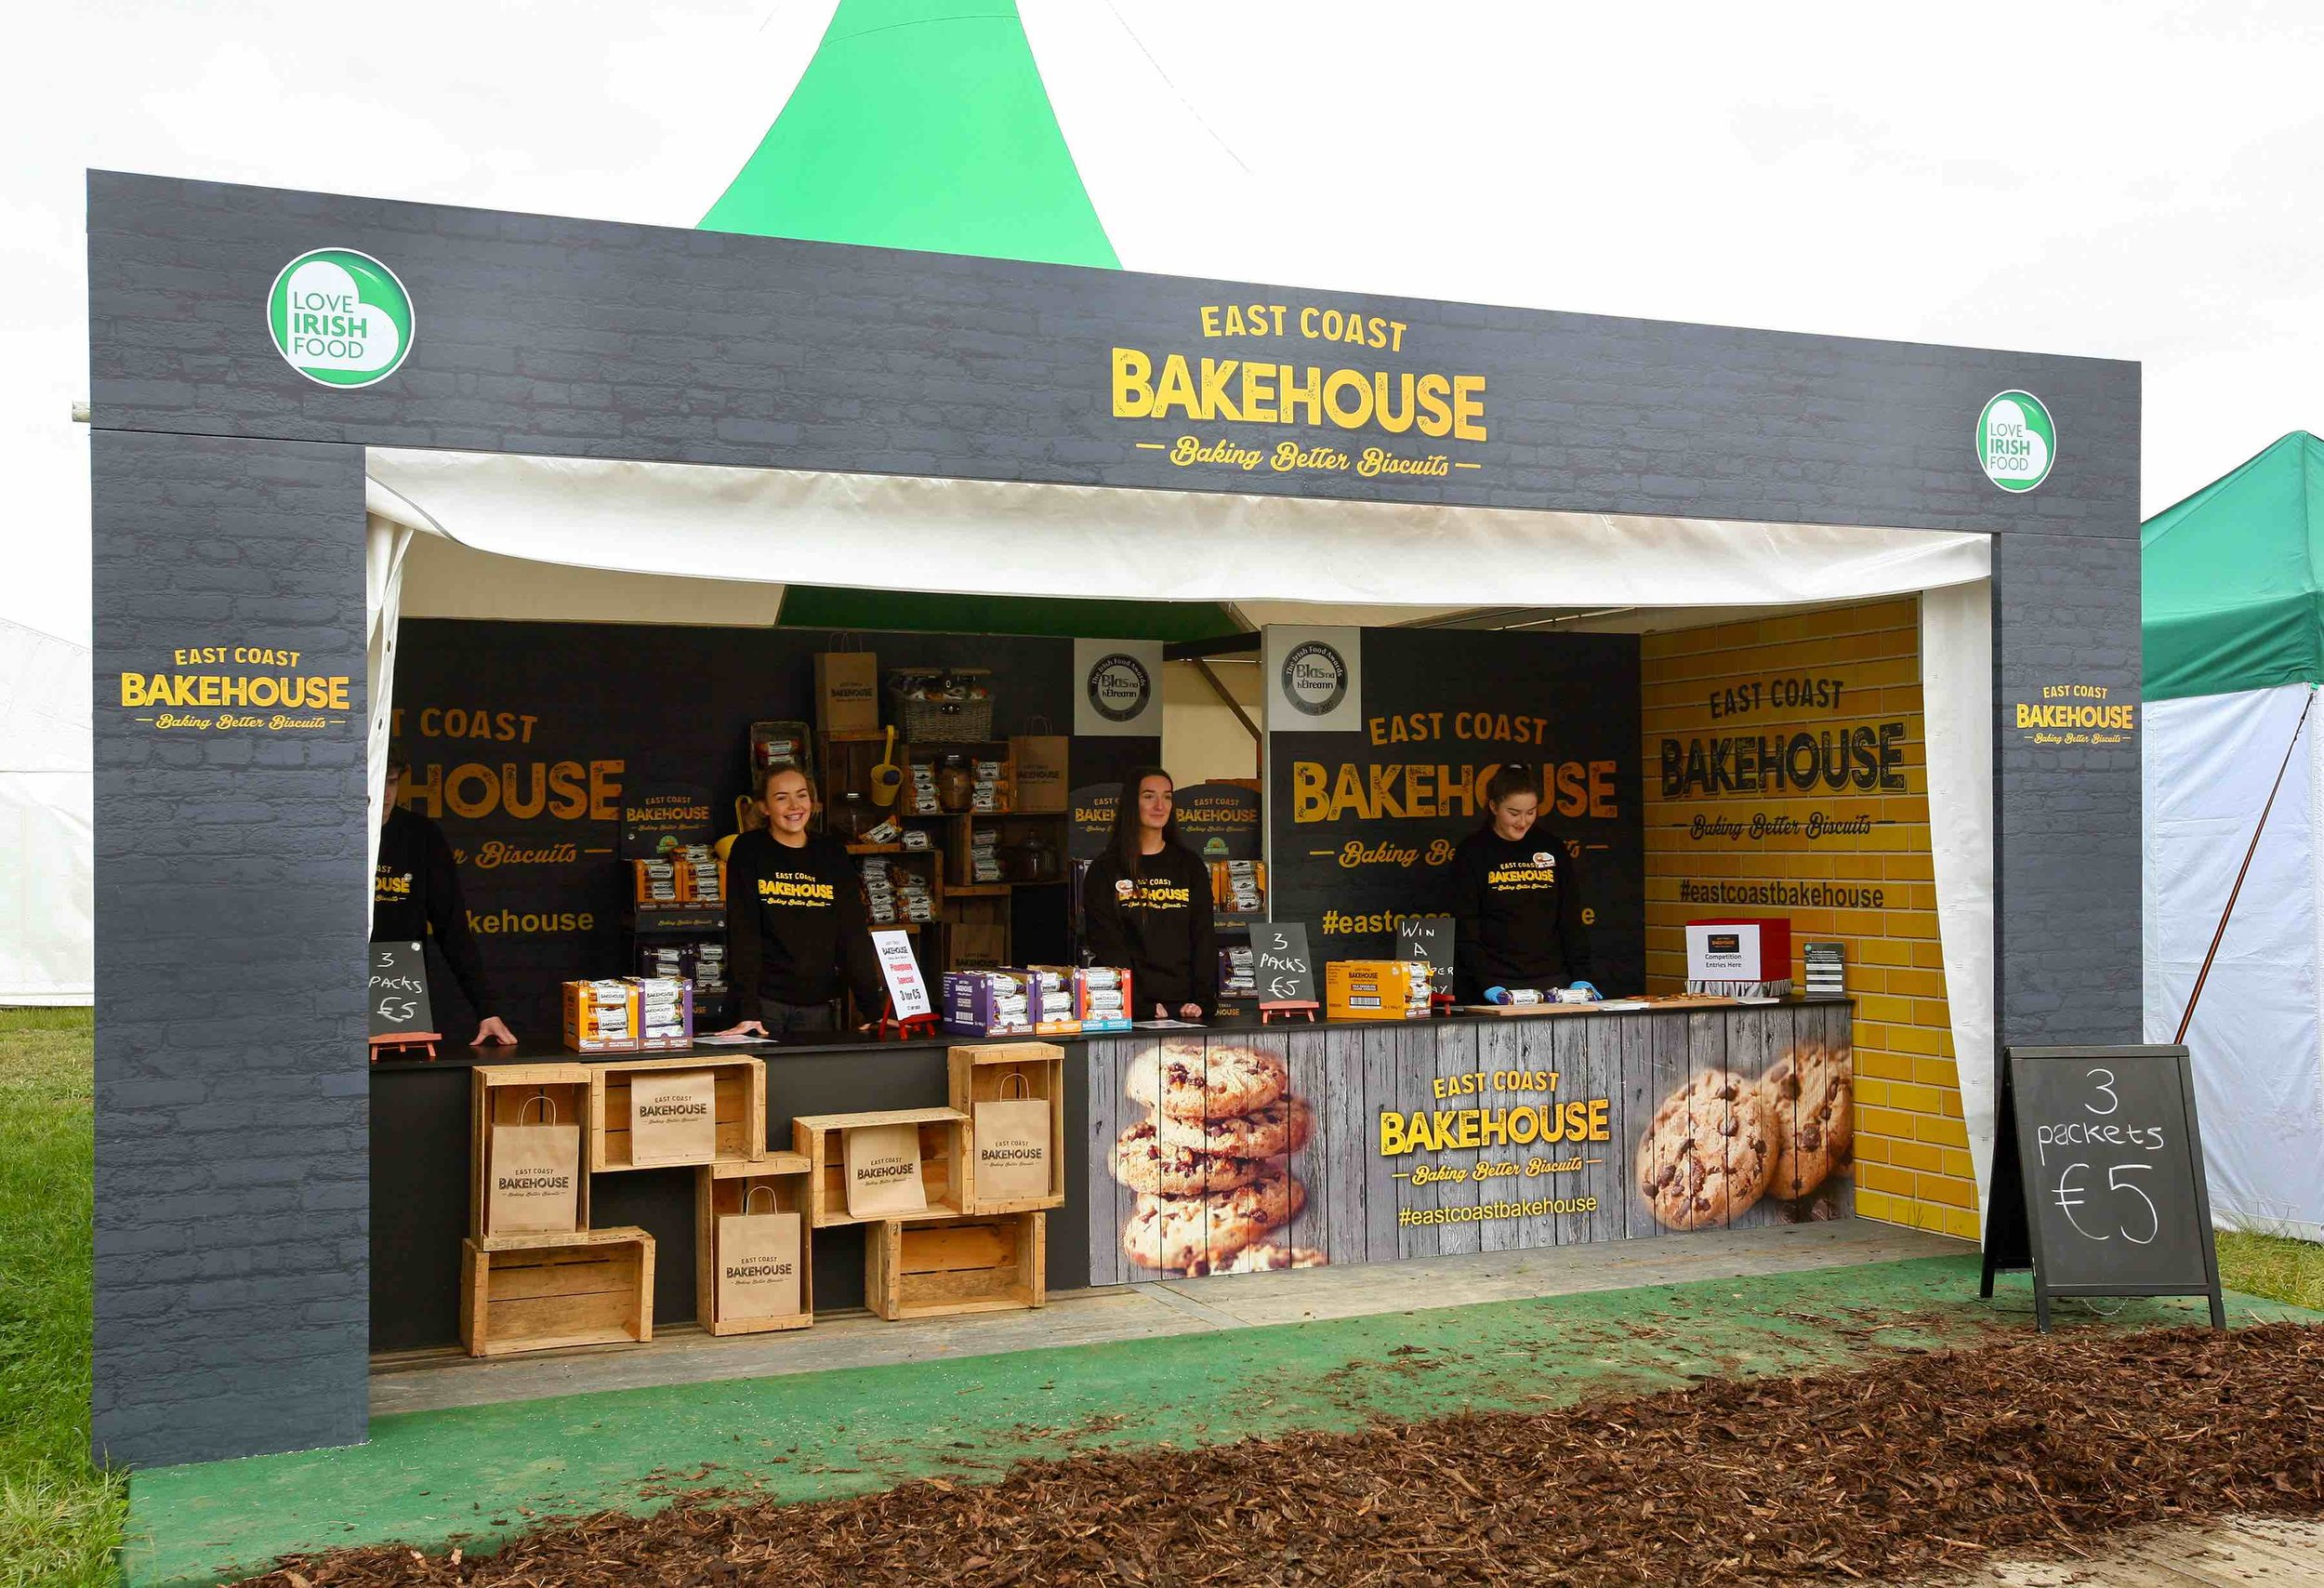 Eastcoast Bakehouse Exhibition Stand at The National Ploughing Championships 2017